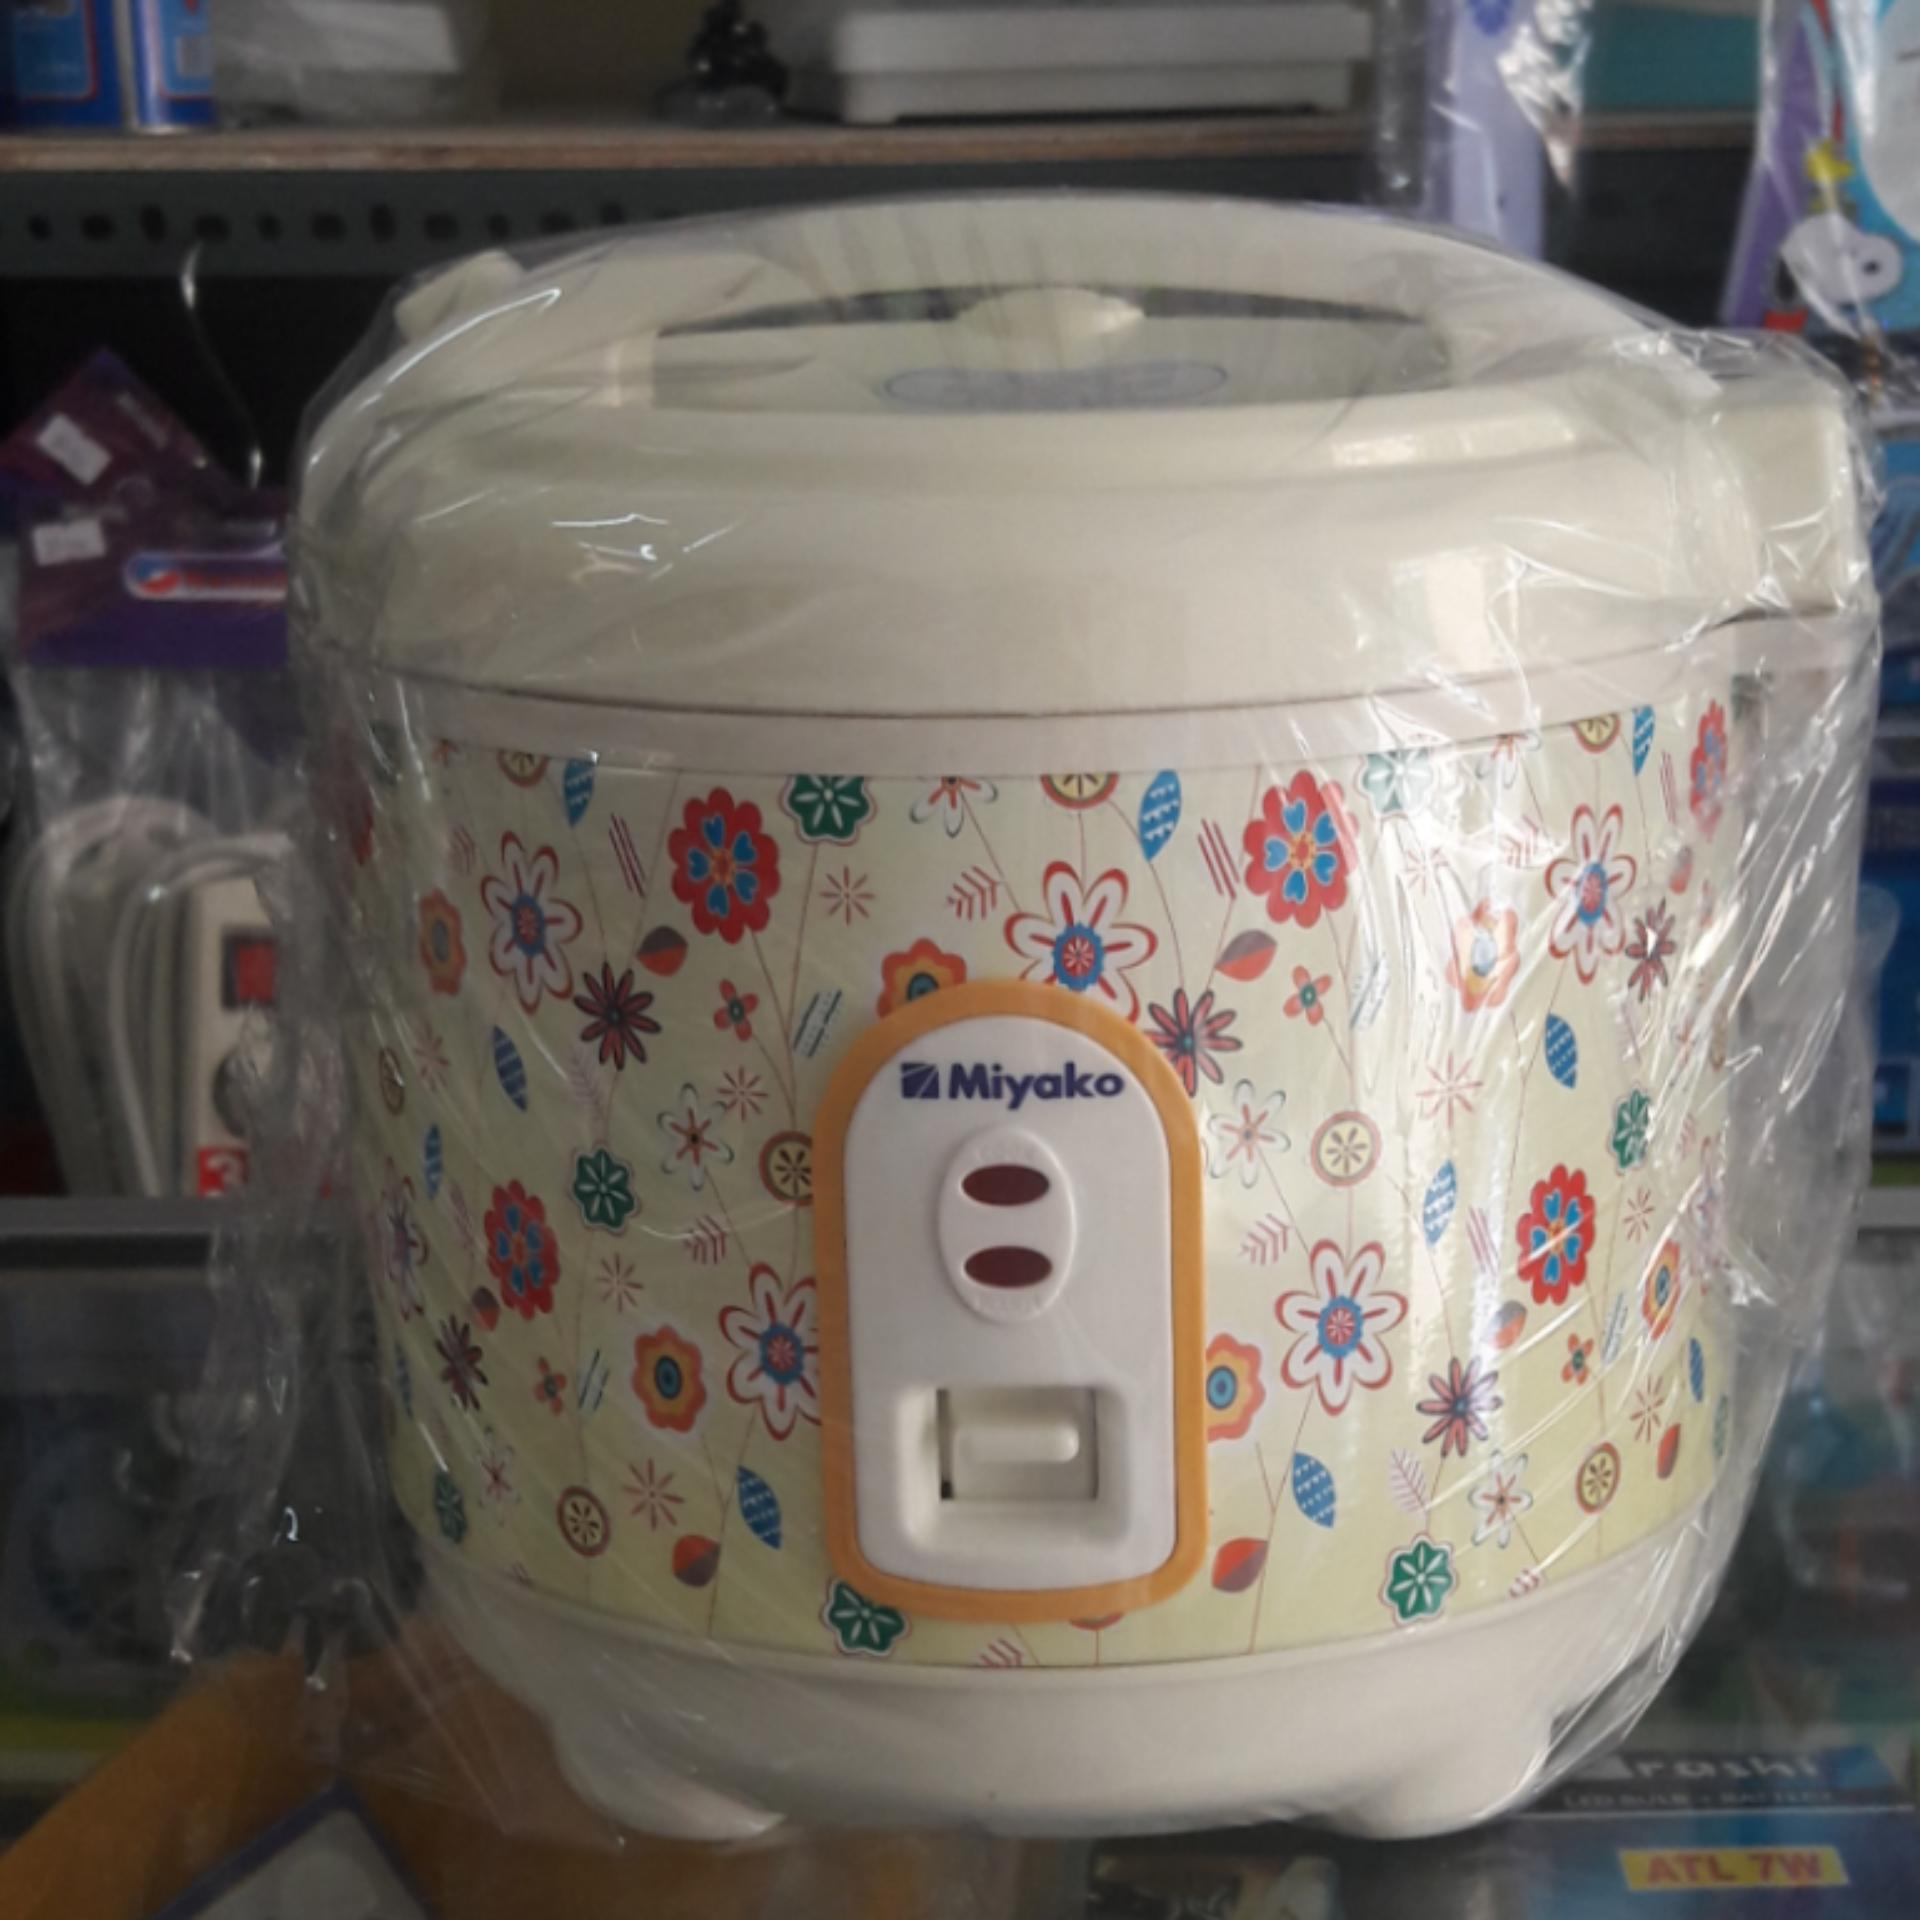 Price Checker Miyako Rice Cooker 3 In 1 Magic Com Warmer Plus 063 Jar Mcm 508 18 Liter